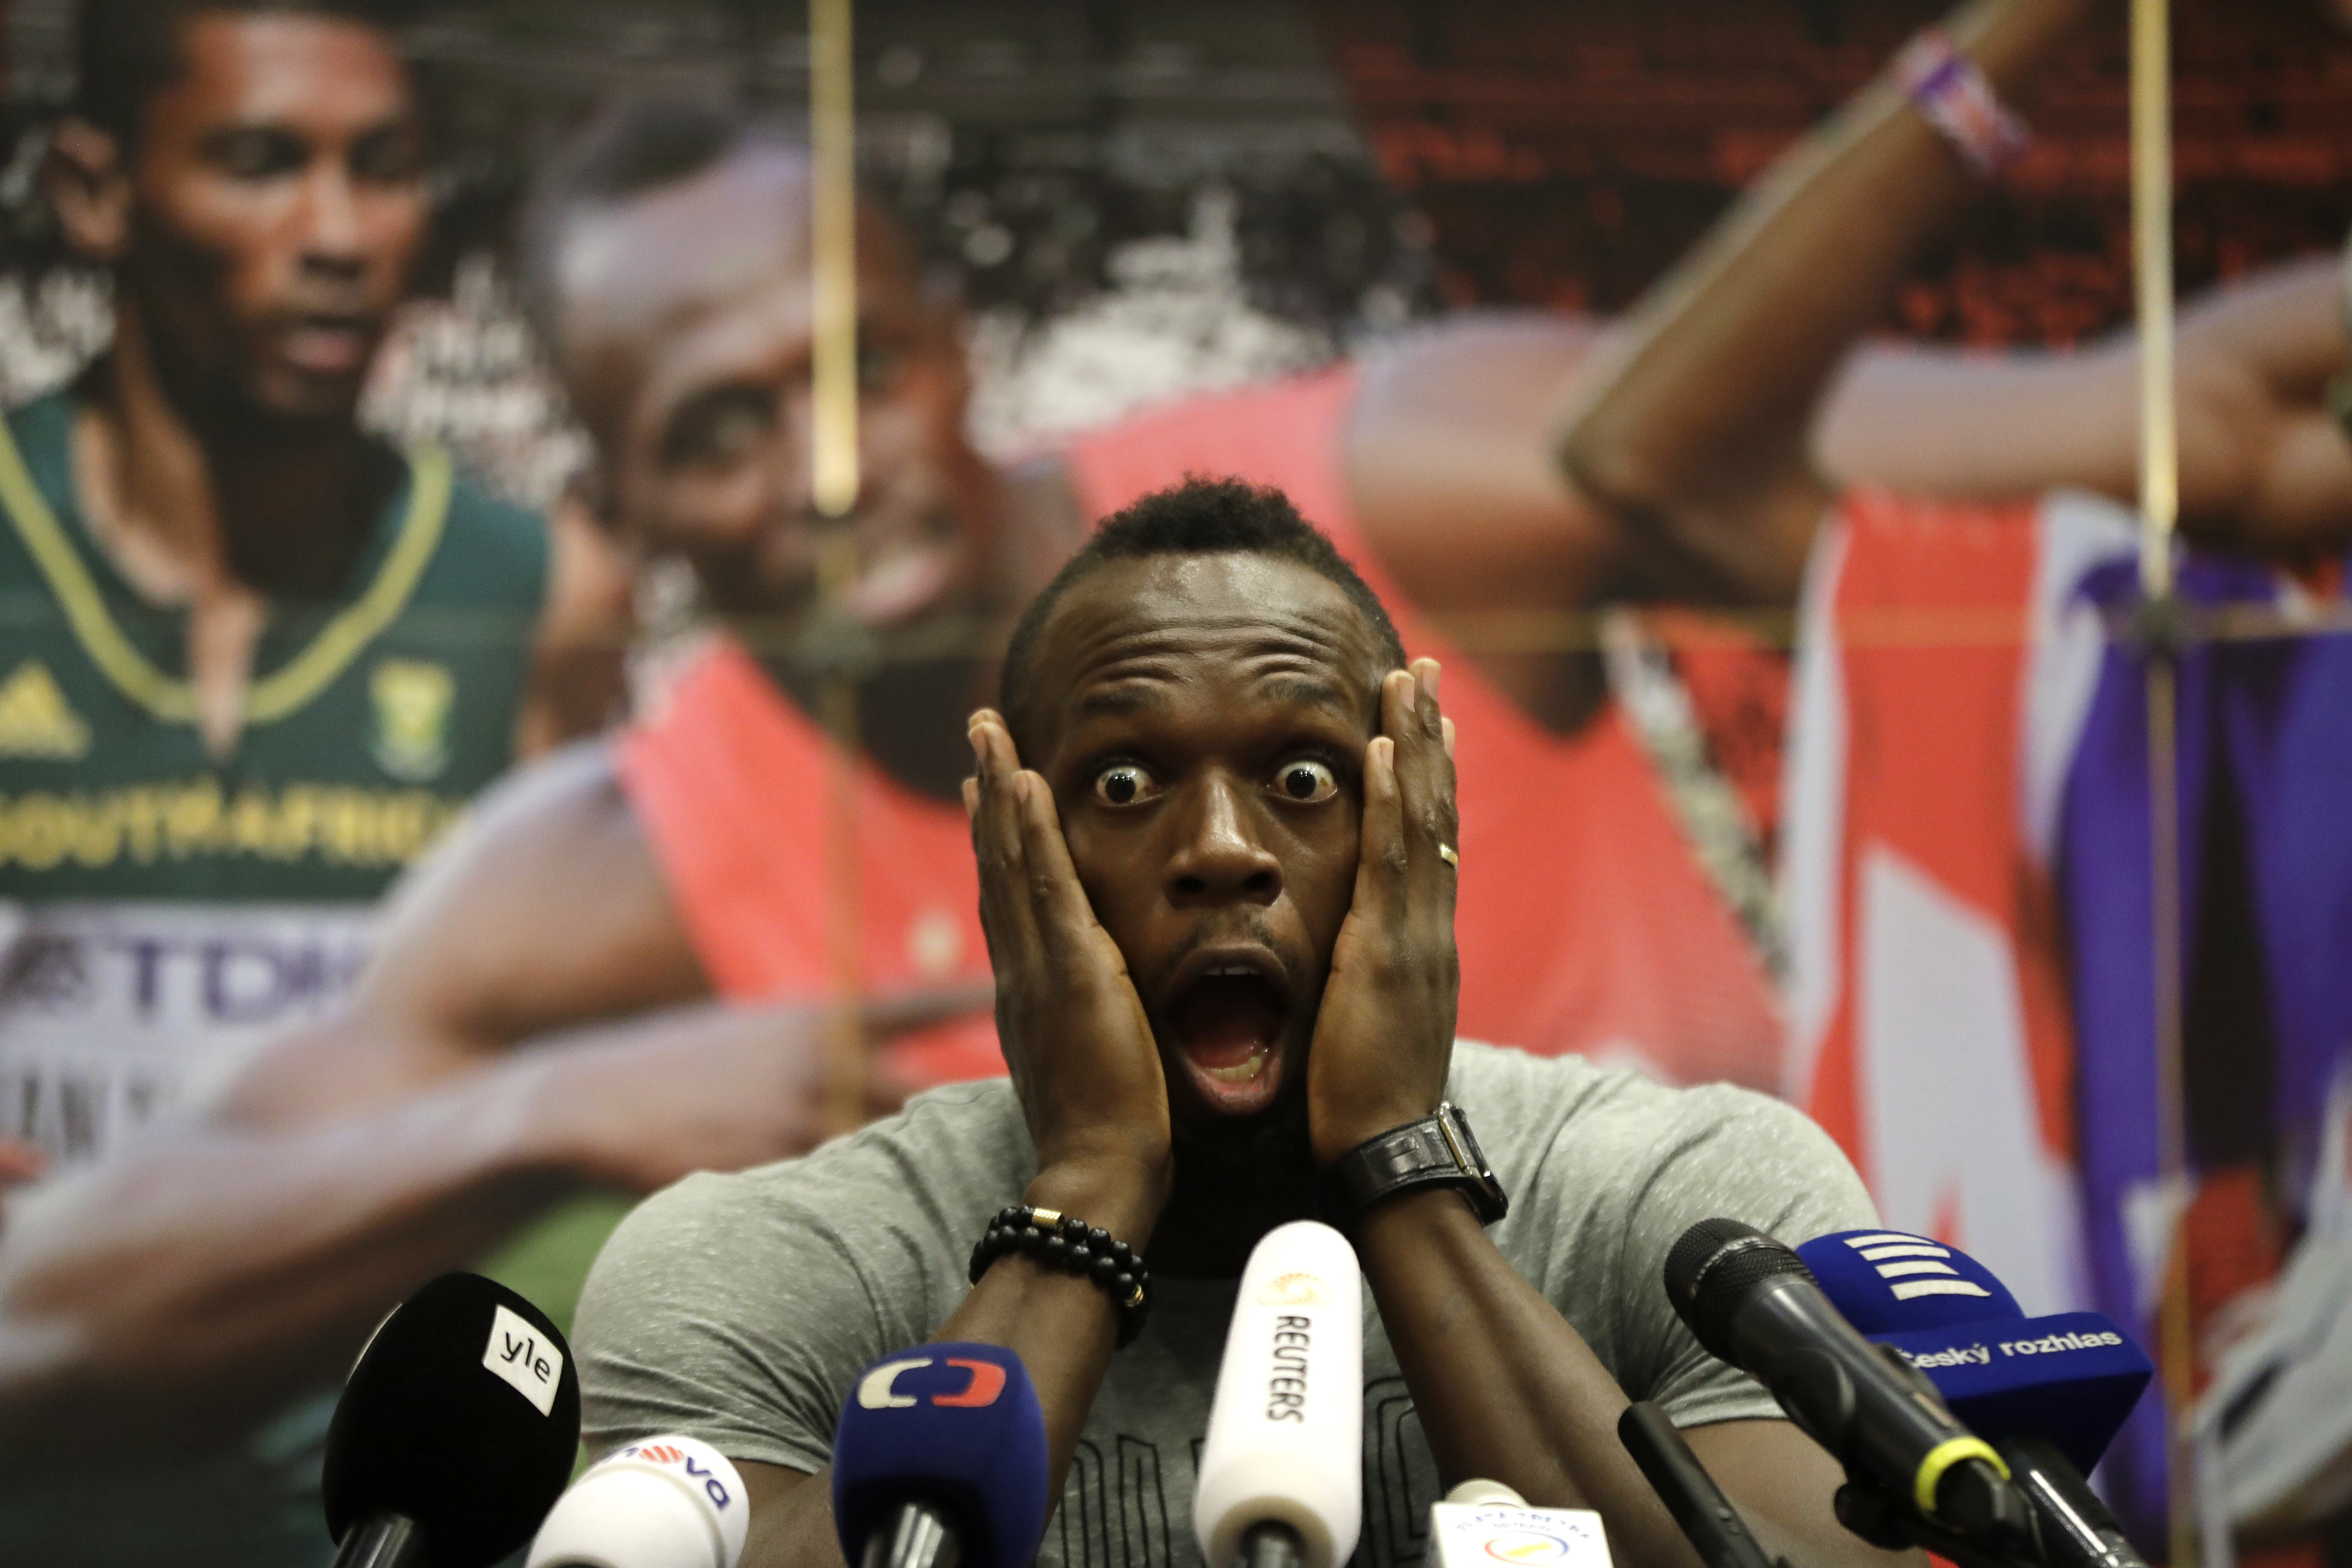 Jamaica's sprinter Usain Bolt grimaces during a press conference prior Golden Spike Athletic meeting in Ostrava, Czech Republic, Monday, June 26, 2017. Bolt will compete in the 100 meters at the Golden Spike on Wednesday, June 28, 2017. (AP Photo/Petr Dav